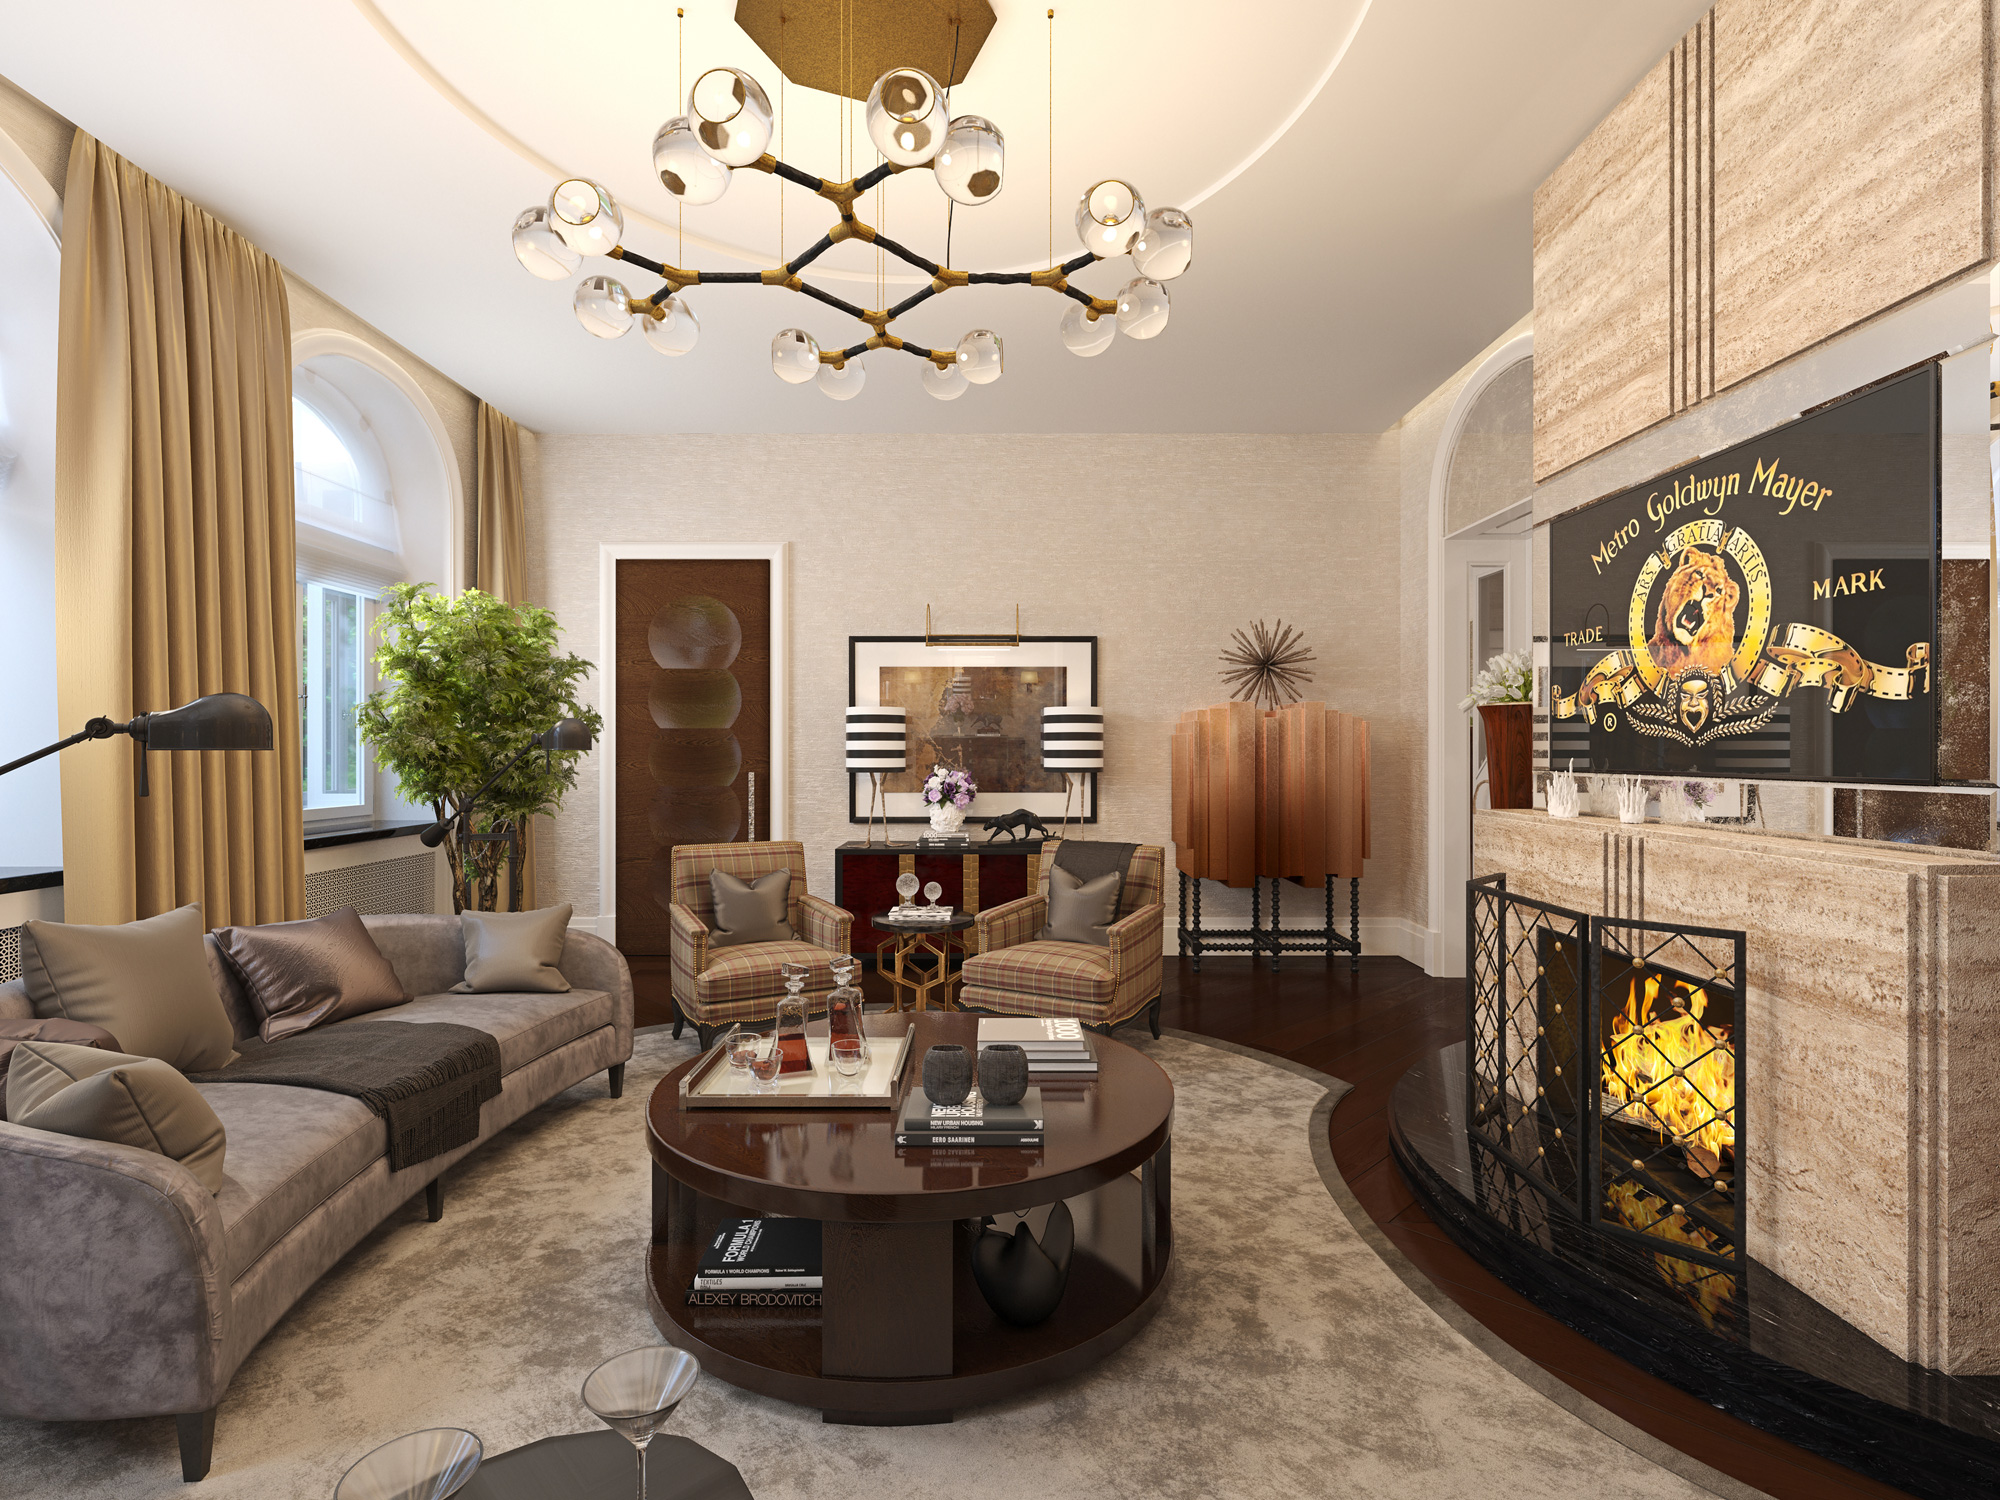 6 Luxury Living Rooms with incredible lighting designs elizabeth apartment riga living room ideas 6 Luxury Living Room Ideas With Incredible Lighting Designs 6 Luxury Living Room Ideas with incredible lighting designs elizabeth apartment riga